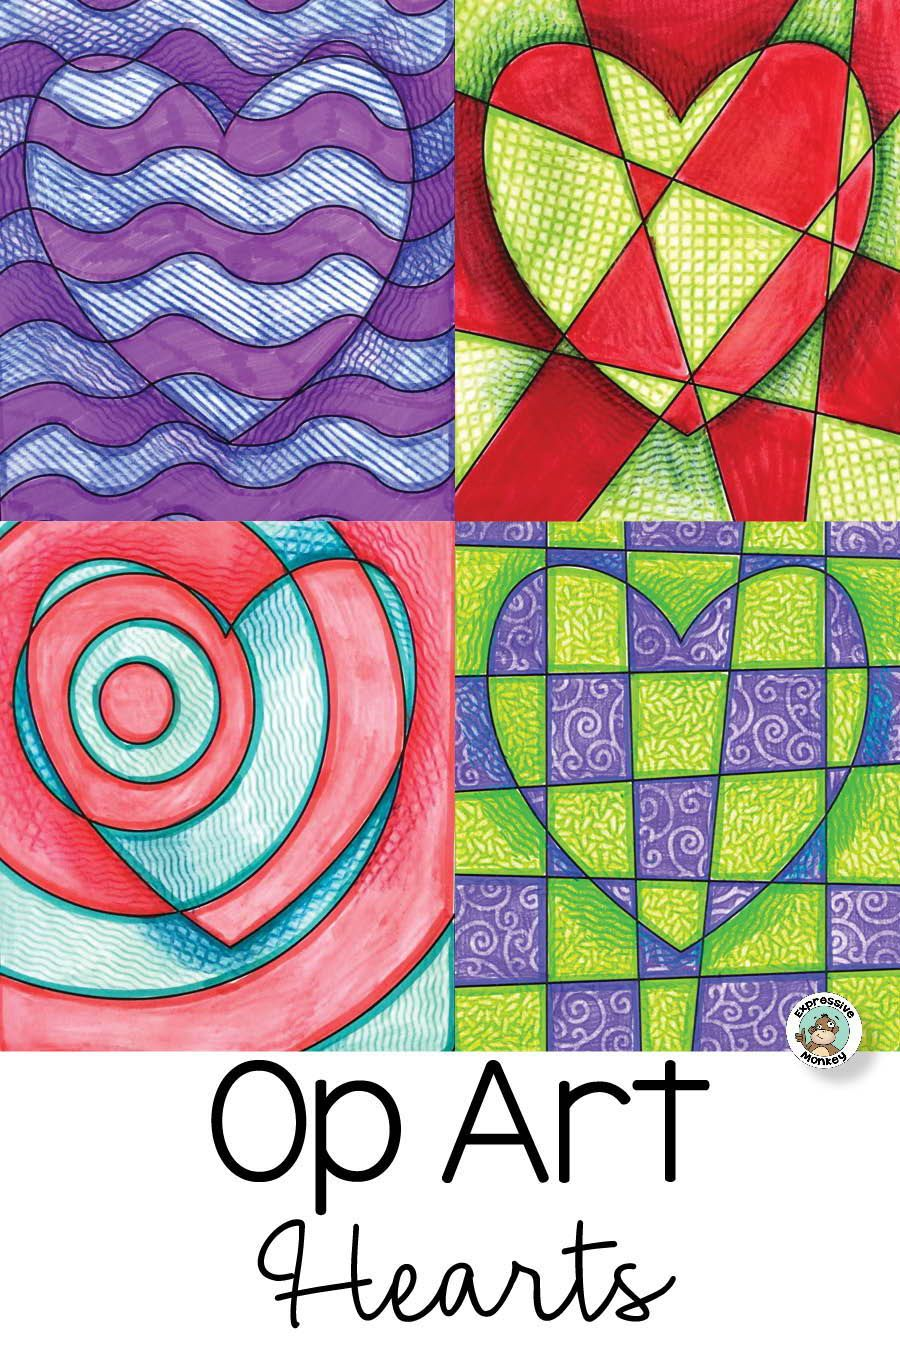 Op Art Hearts - perfect for Valentine's Day! This Op Art lesson has many variations and options.  #ArtProjectsForKids  #artlessons  #ArtEd  #iteachart  #valentinesdayartforkids  #HeartArt  #opartlesson